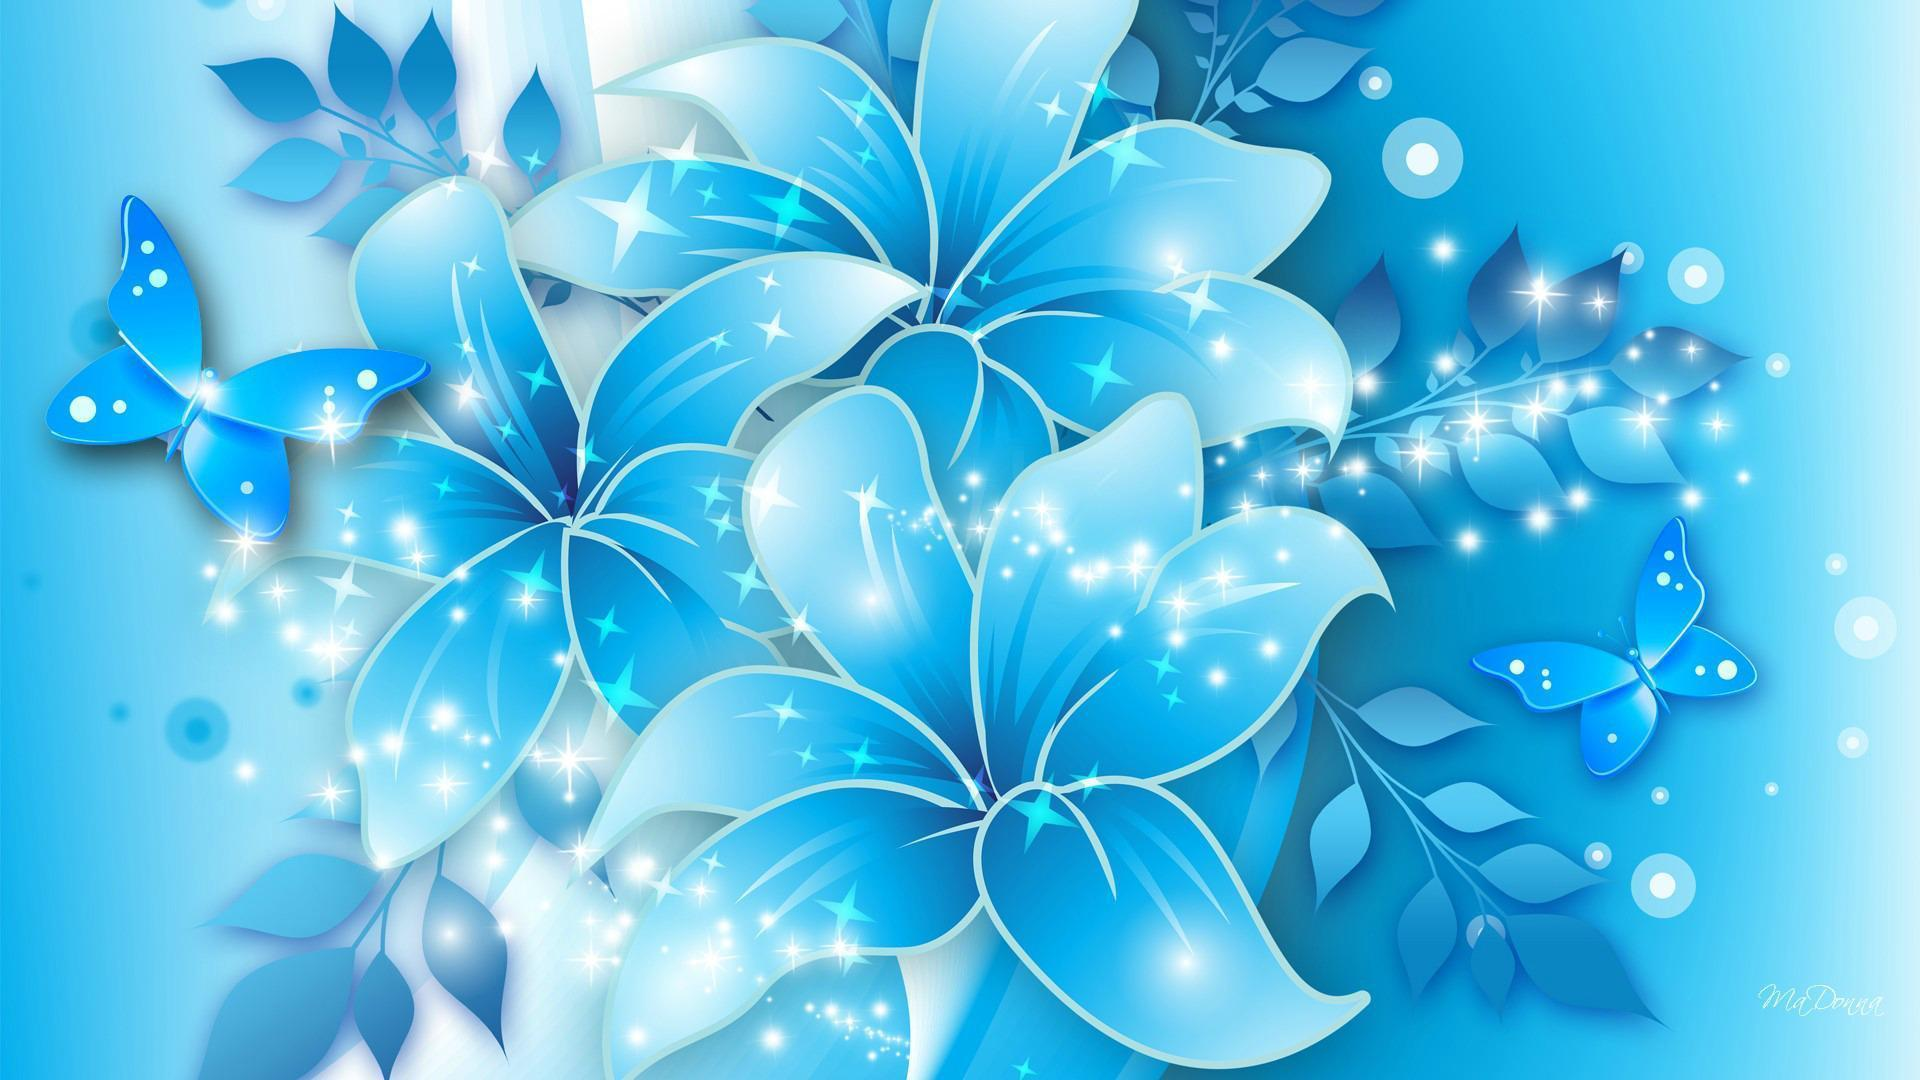 Blue Flower Wallpapers Wallpaper Cave